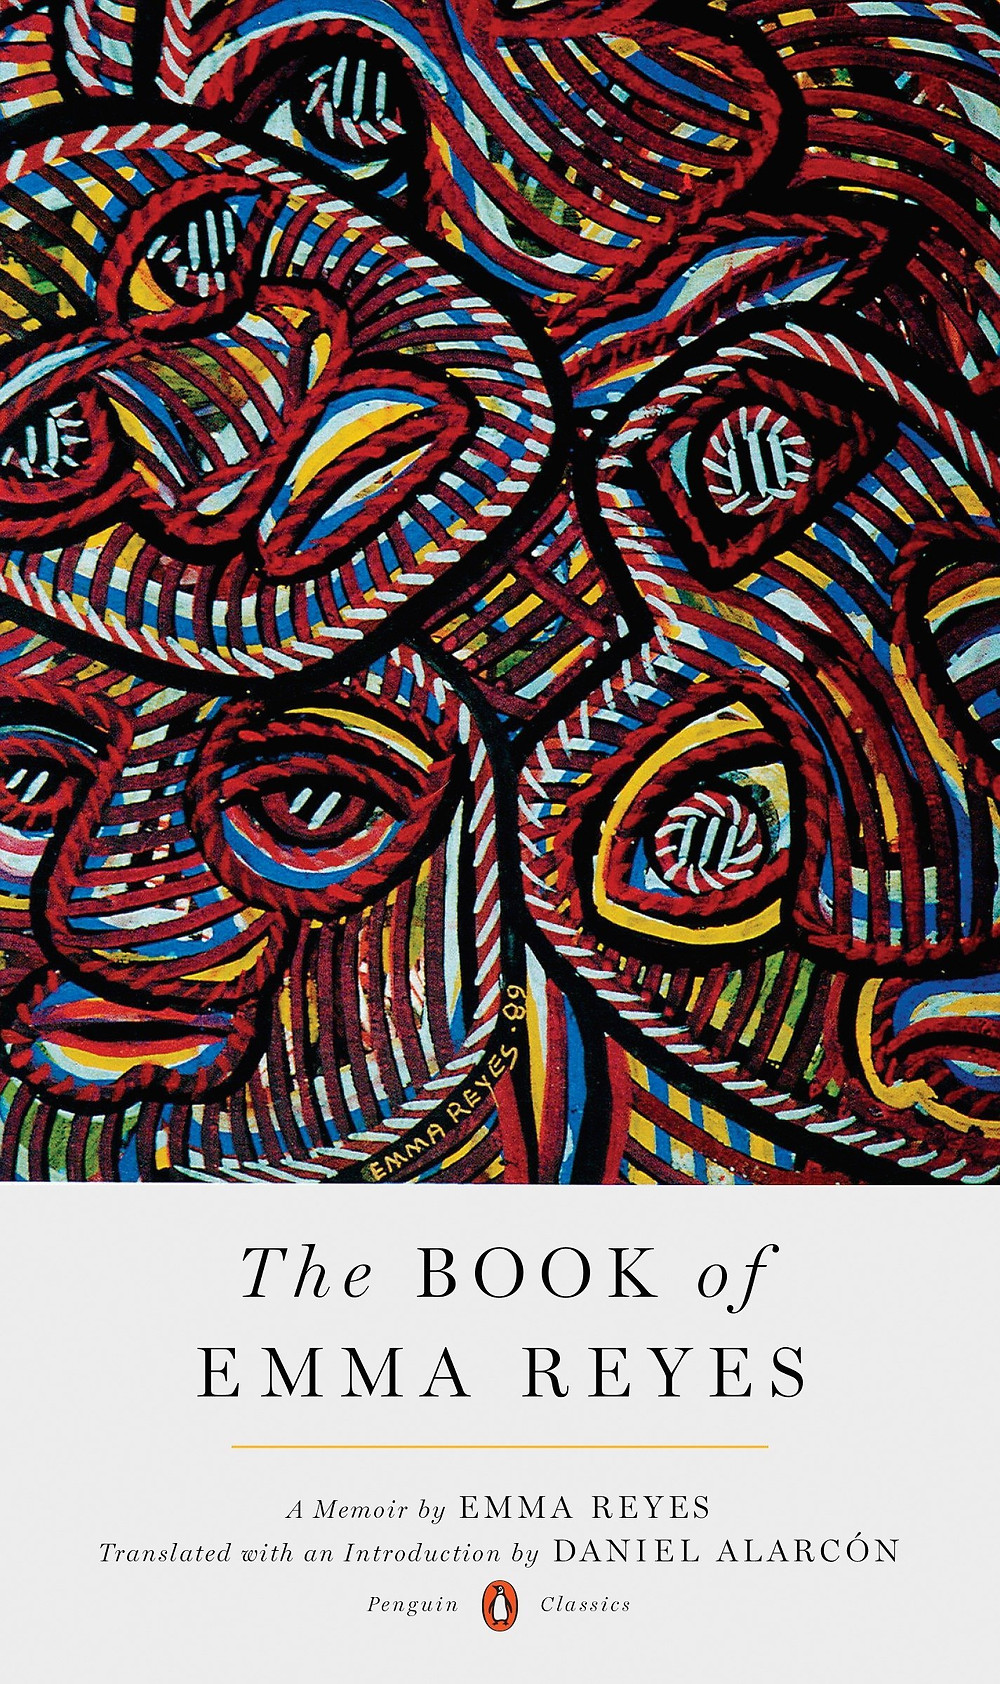 The Book of Emma Reyes by Emma Reyes [translated by Daniel Alarcón]